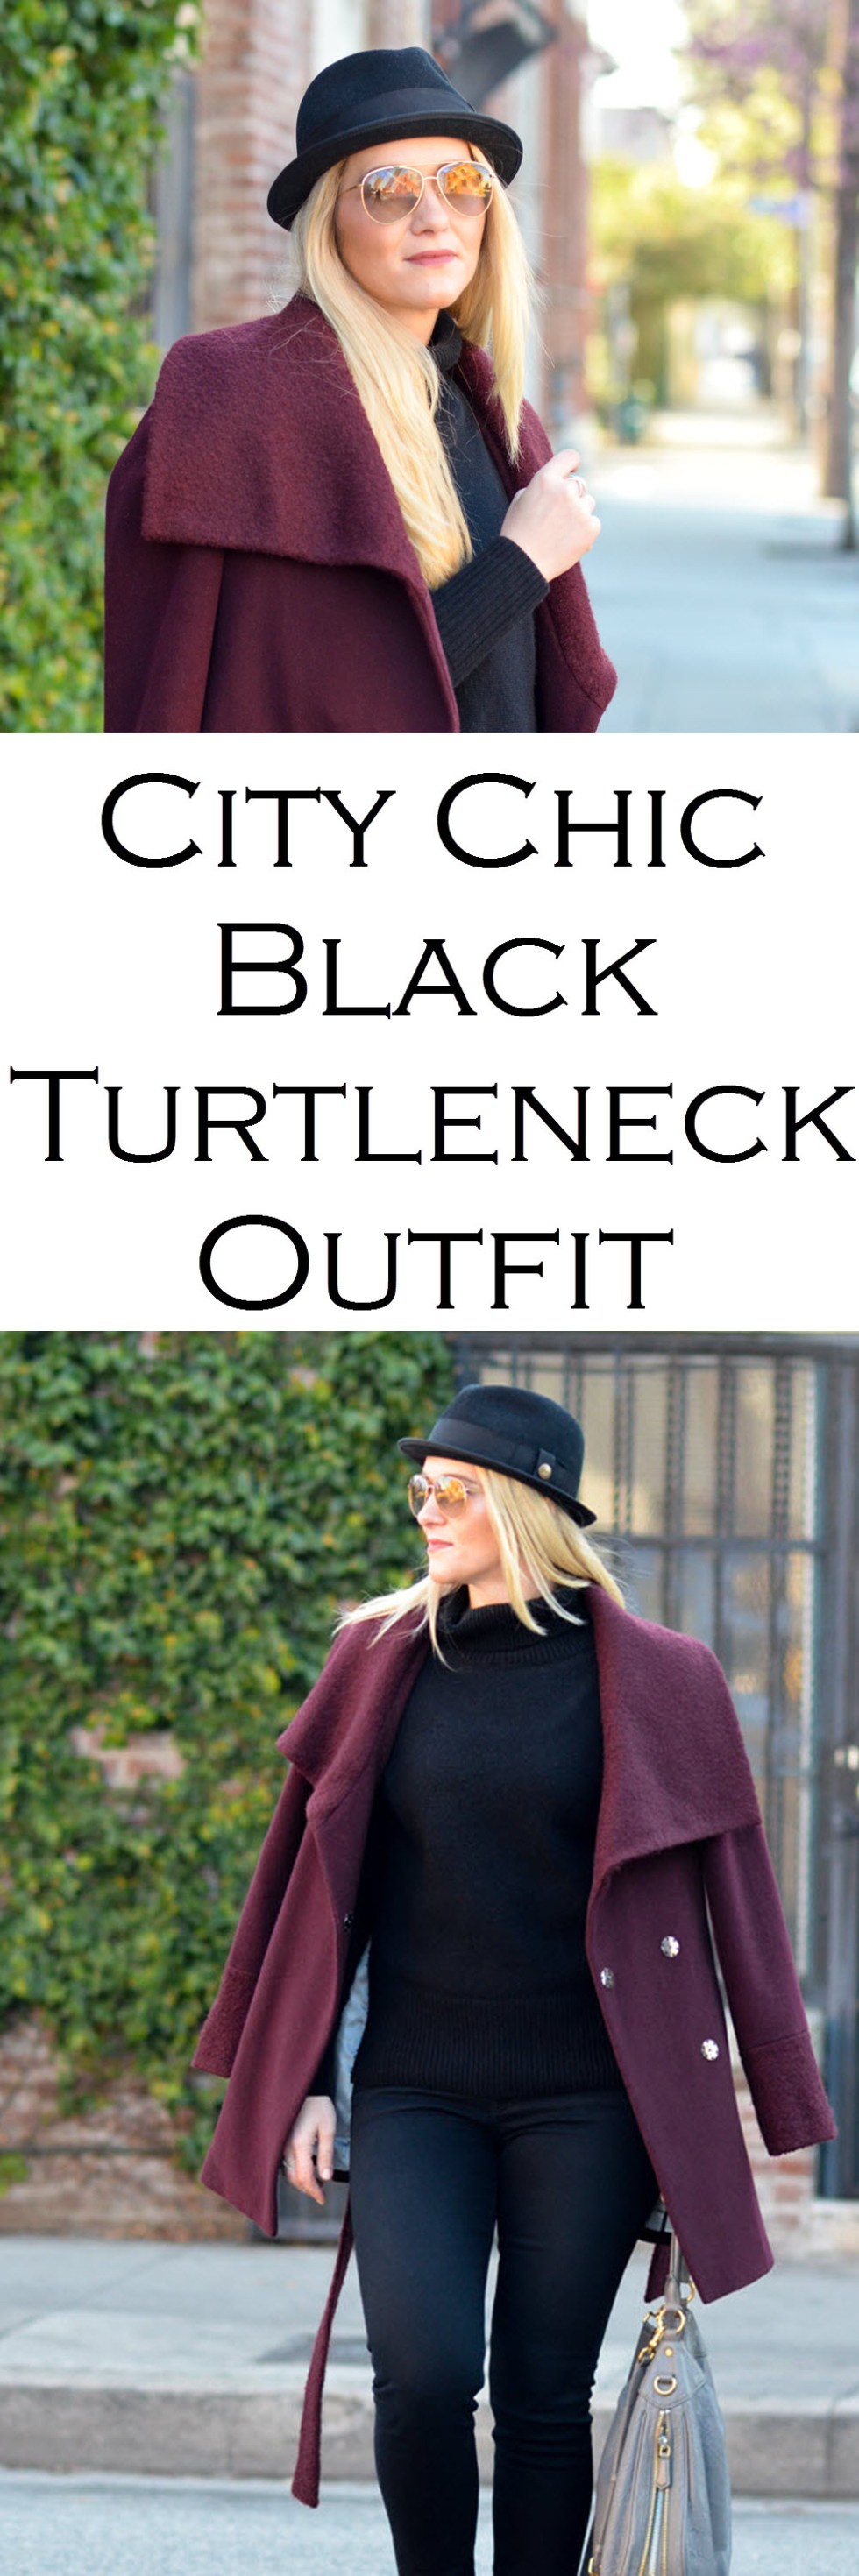 City Chic Black Turtleneck Outfit w. Black Skinny Jeans + Wrap Coat.